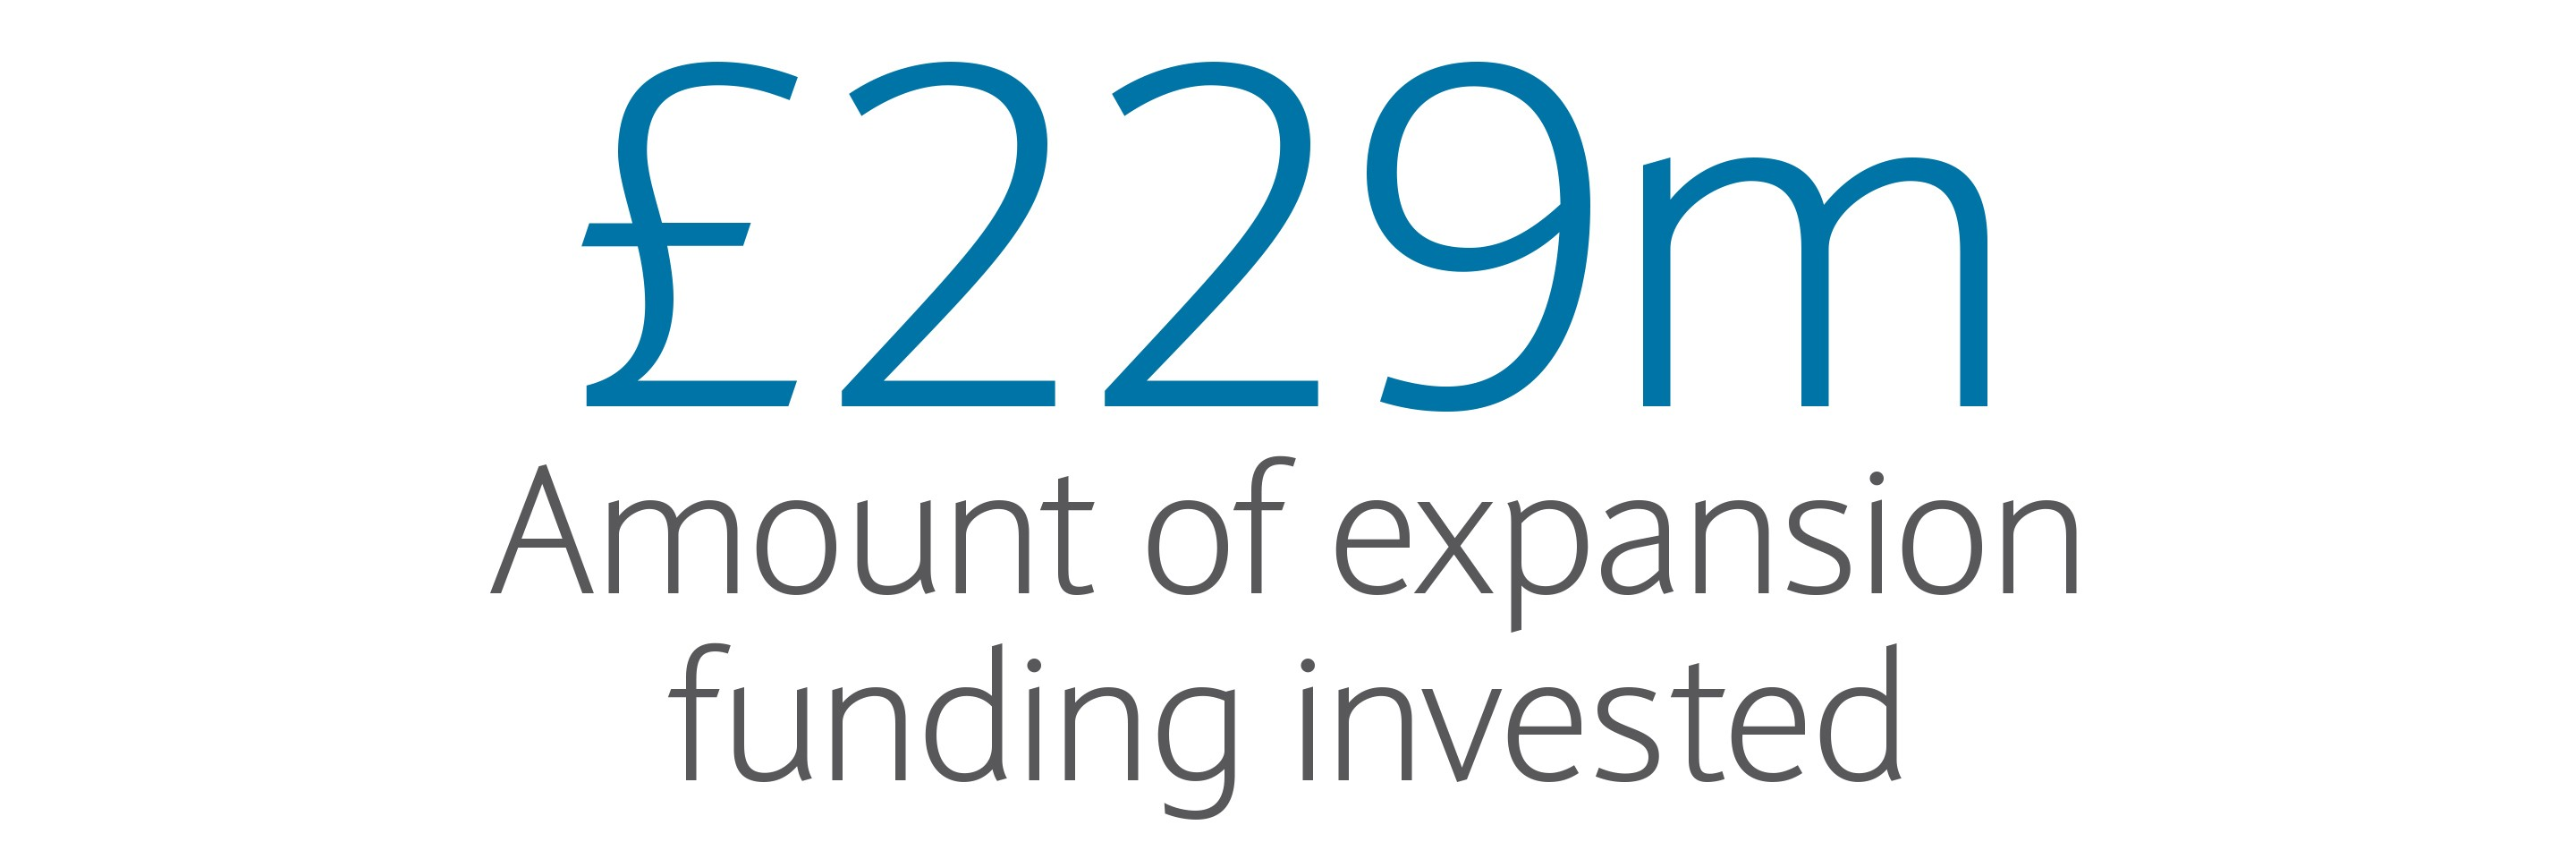 £229m: Amount of expansion funding invested